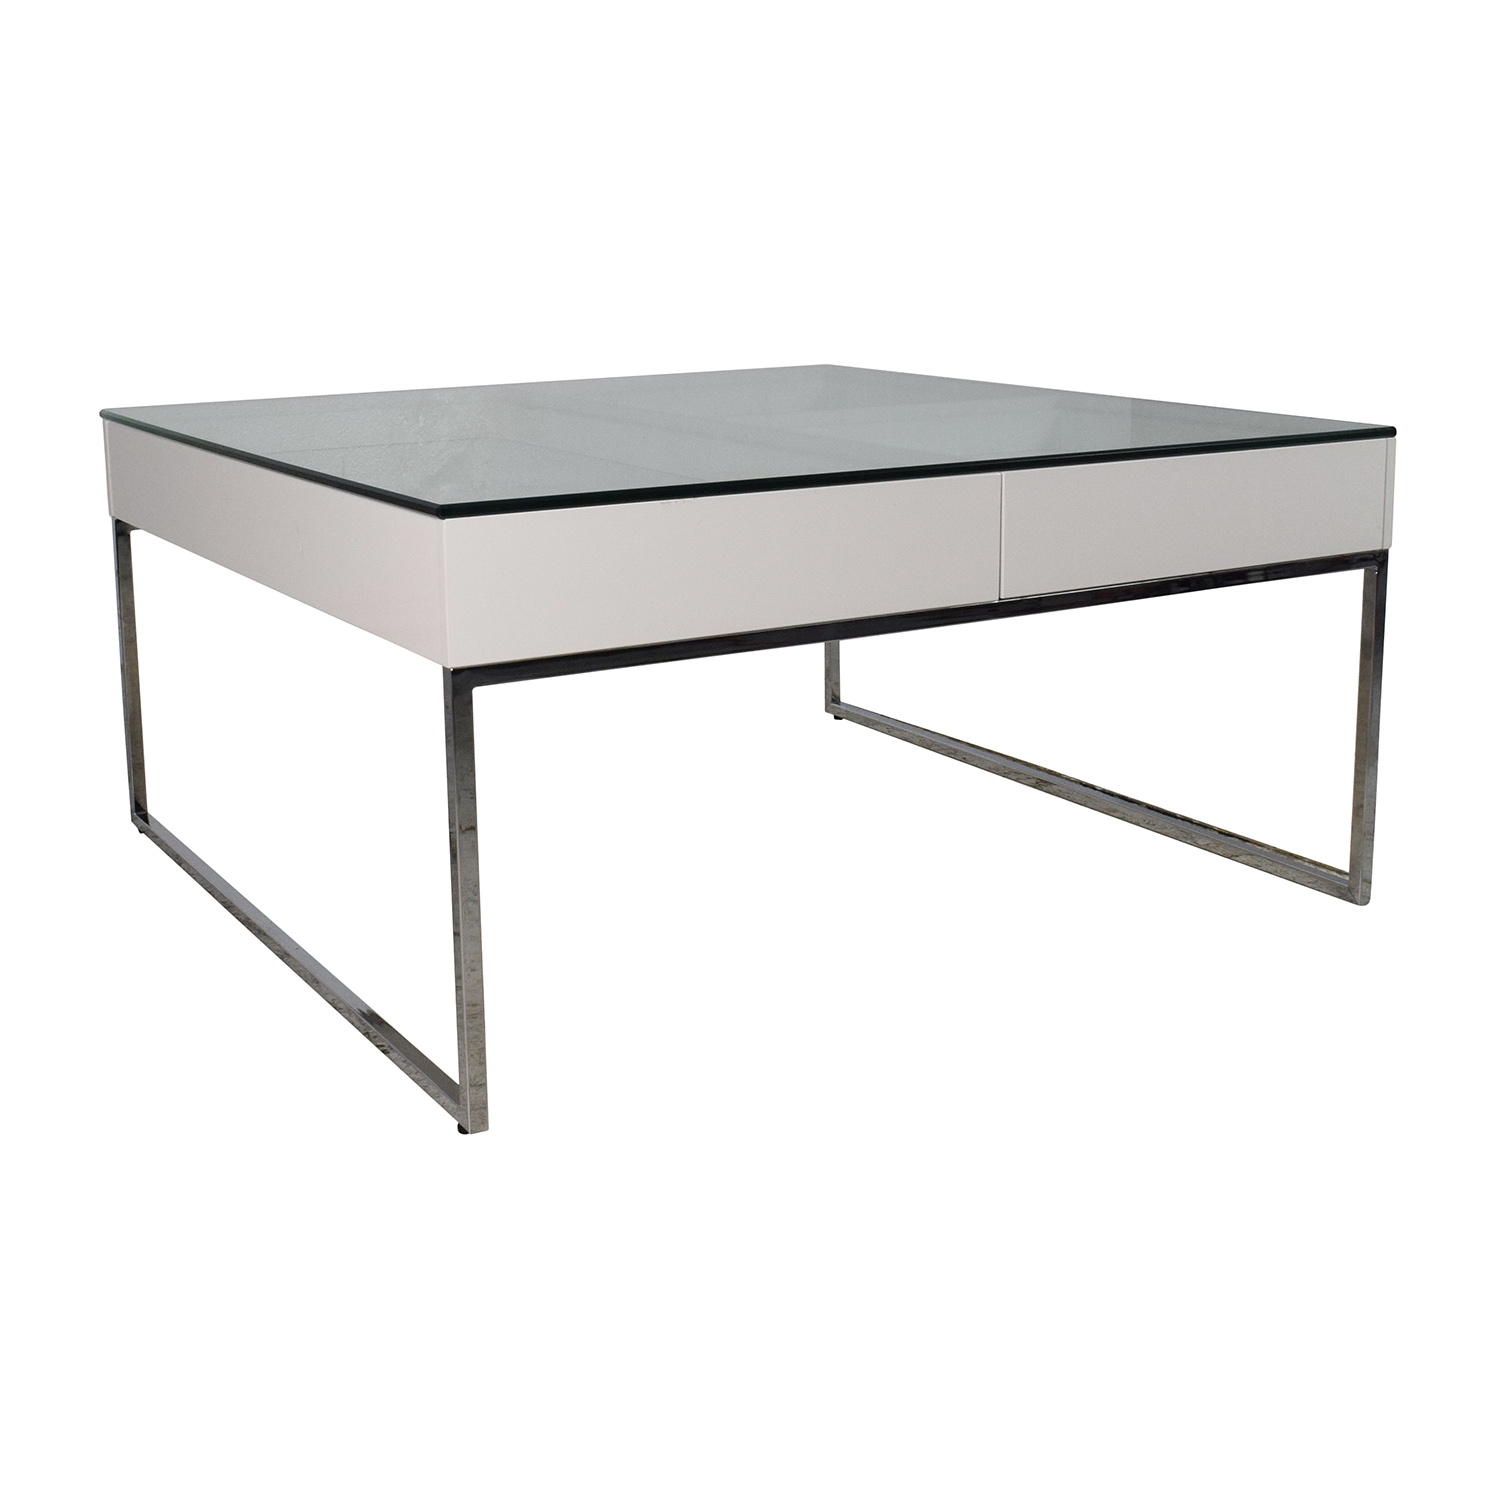 74 off boconcept boconcept white coffee table tables. Black Bedroom Furniture Sets. Home Design Ideas